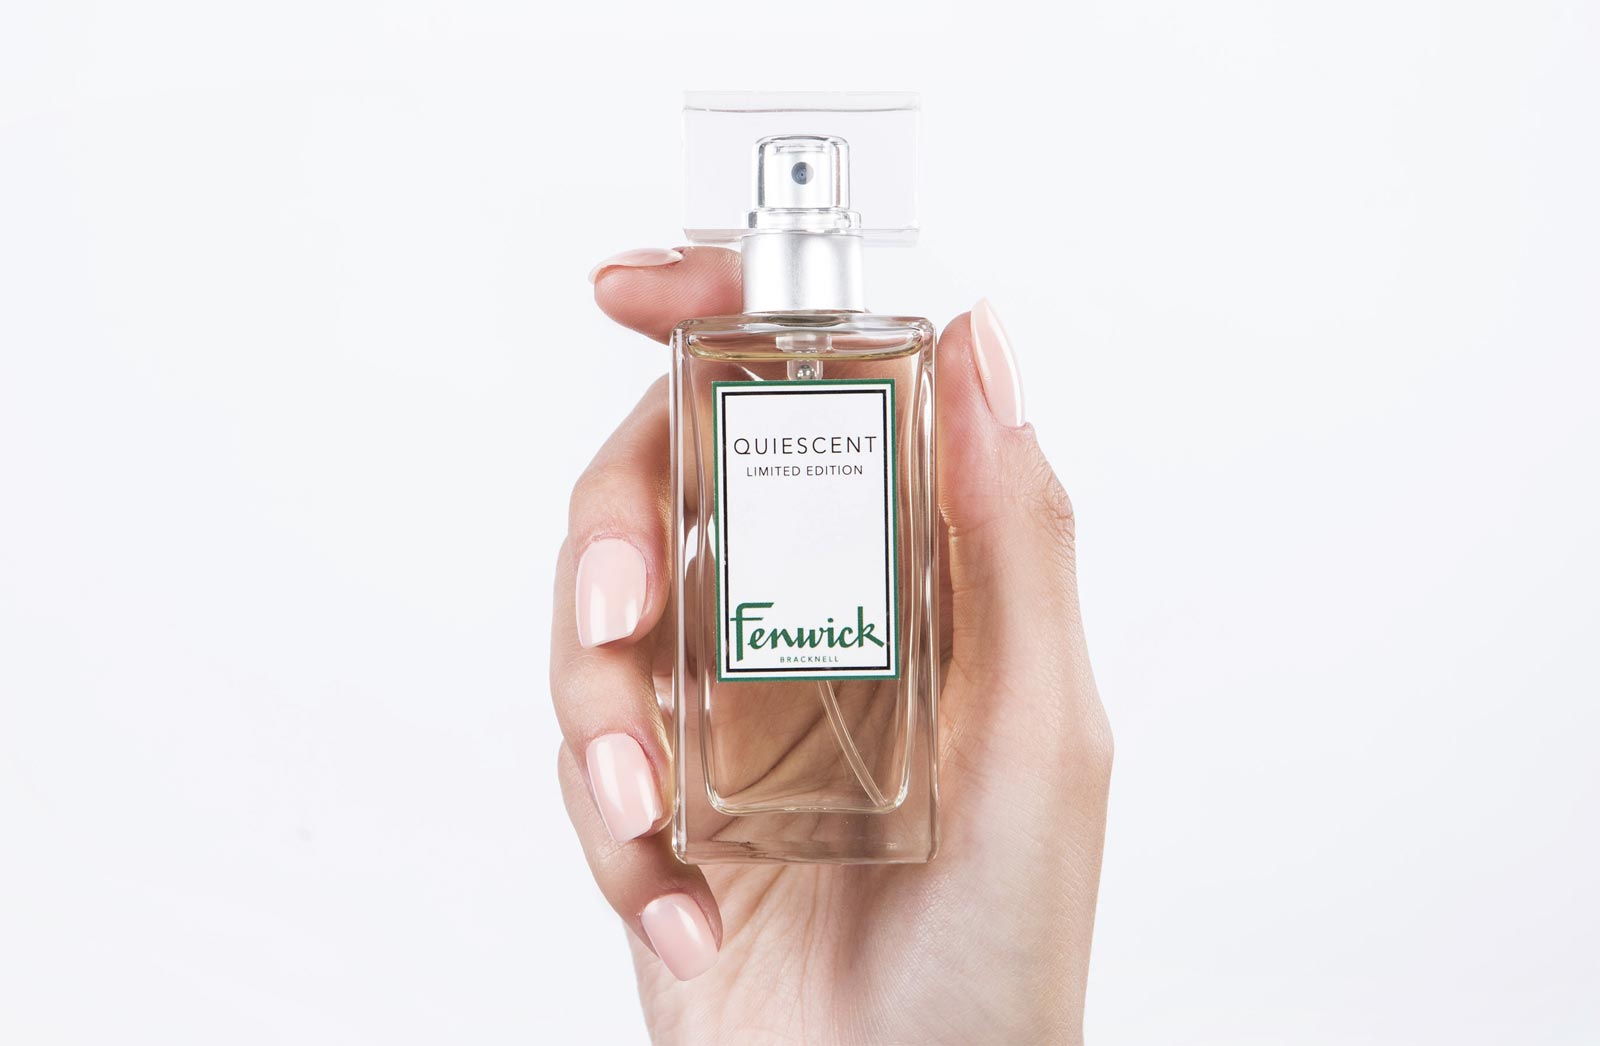 Fenwick Launches Quiescent Fragrance in Conjunction with New Bracknell Store 10